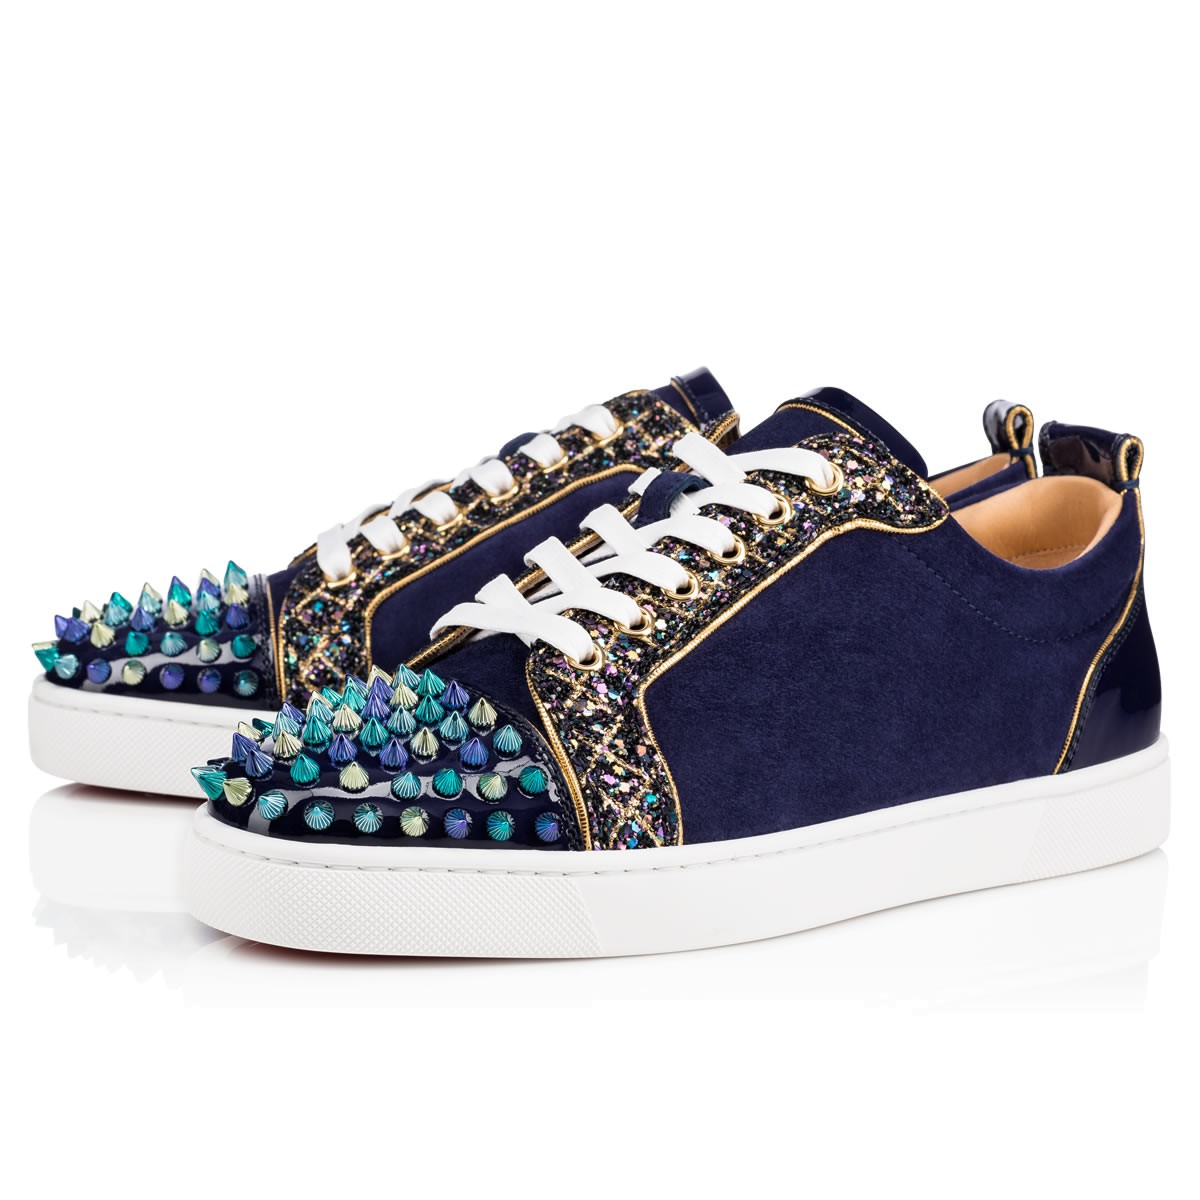 huge selection of 6db23 8765b Christian Louboutin Sneaker Low Top Junior Blue Toes With Strass Spikes Men  Shoes